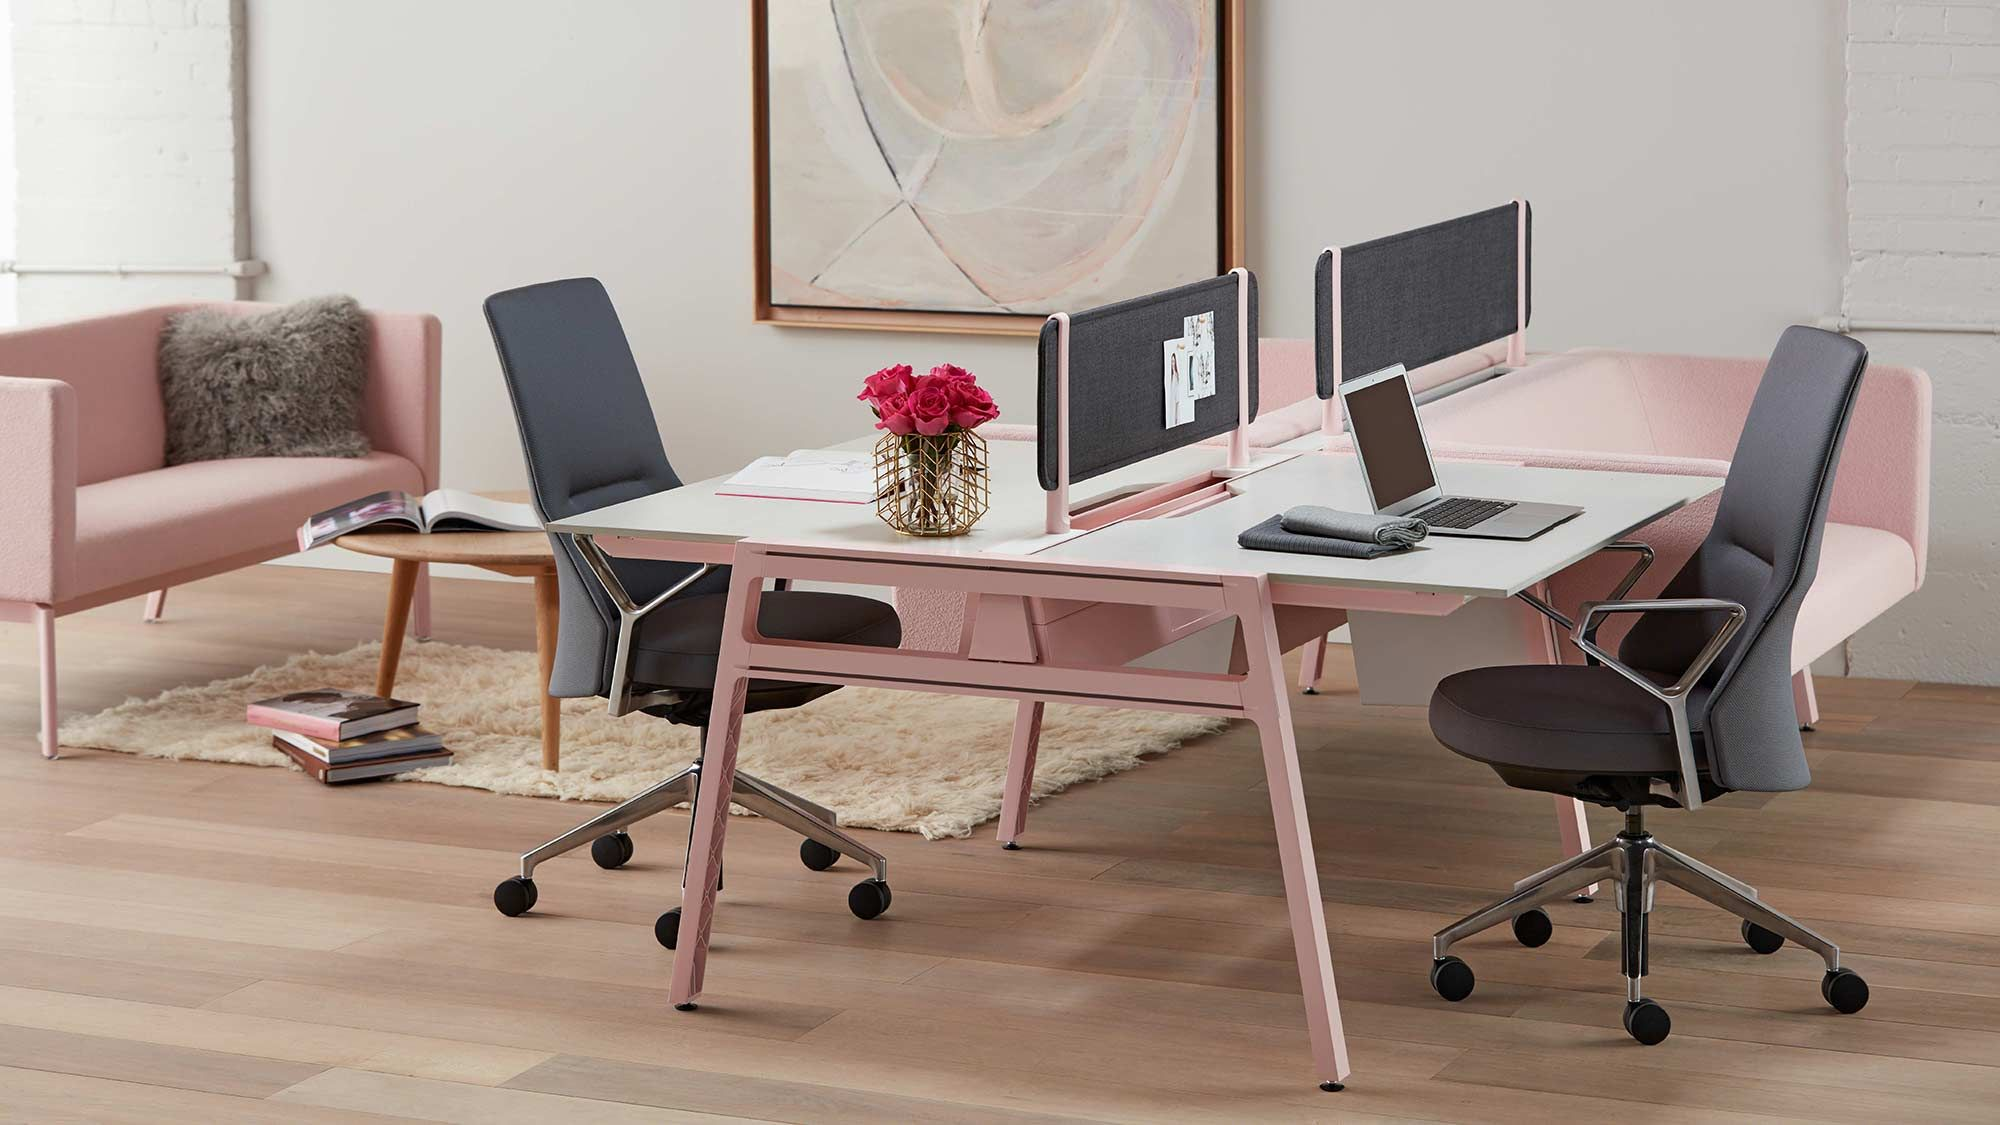 Bivi Modular Office Desk System Features Workspace Pinterest - Modular conference table system